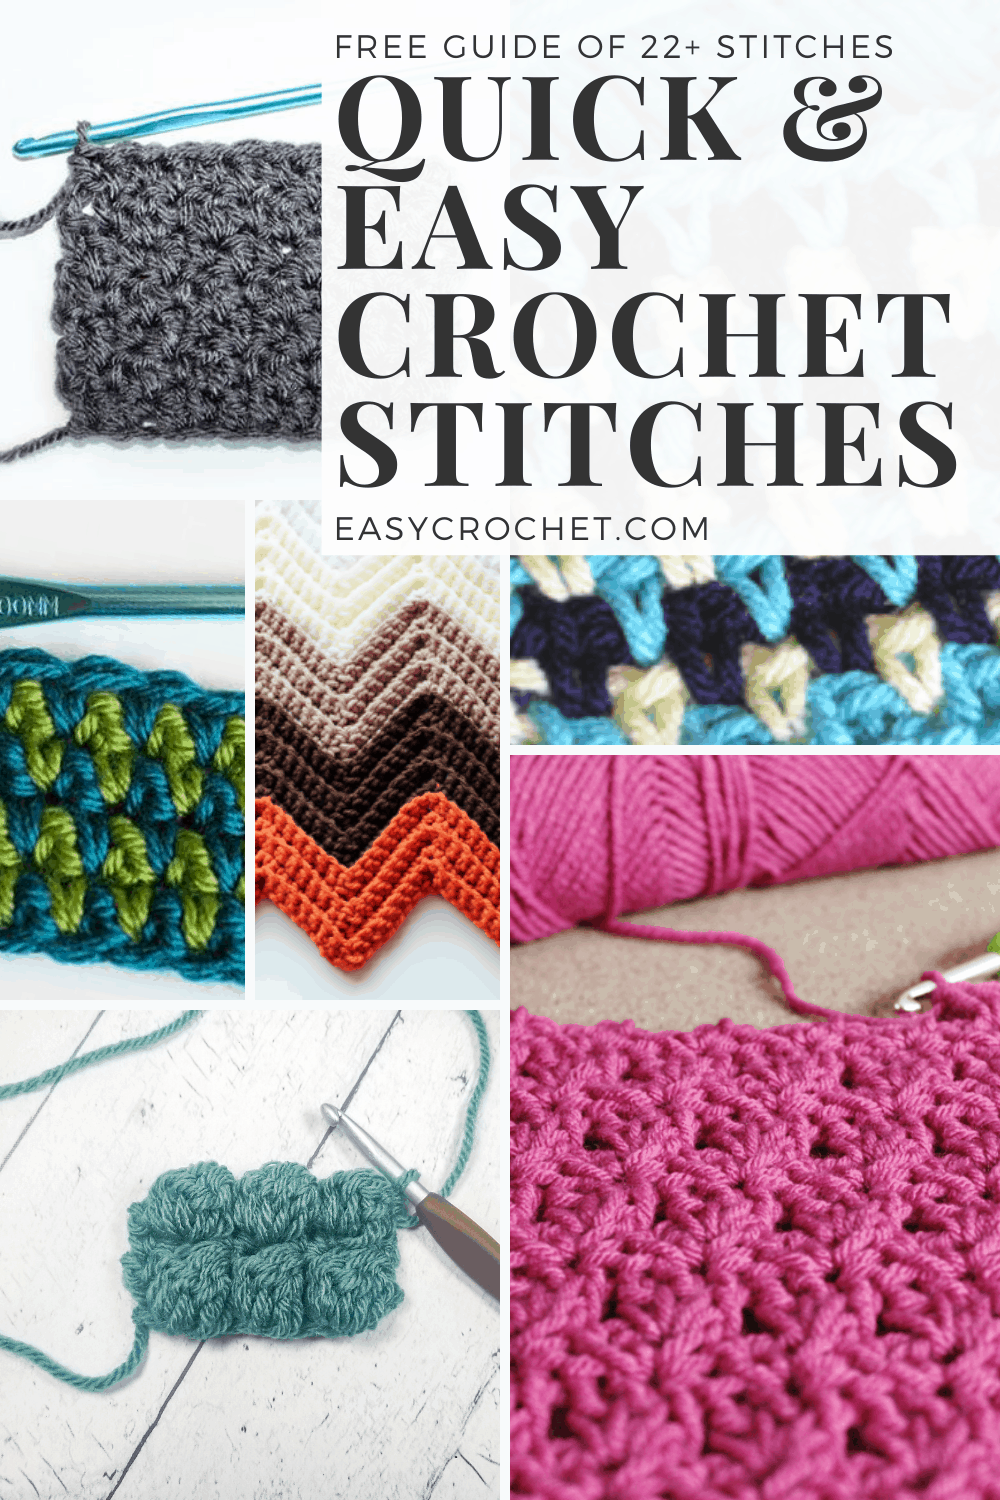 22+ Crochet Stitches that are Great for Beginners to Learn! Learn this simple crochet stitches from Easy Crochet. via @easycrochetcom